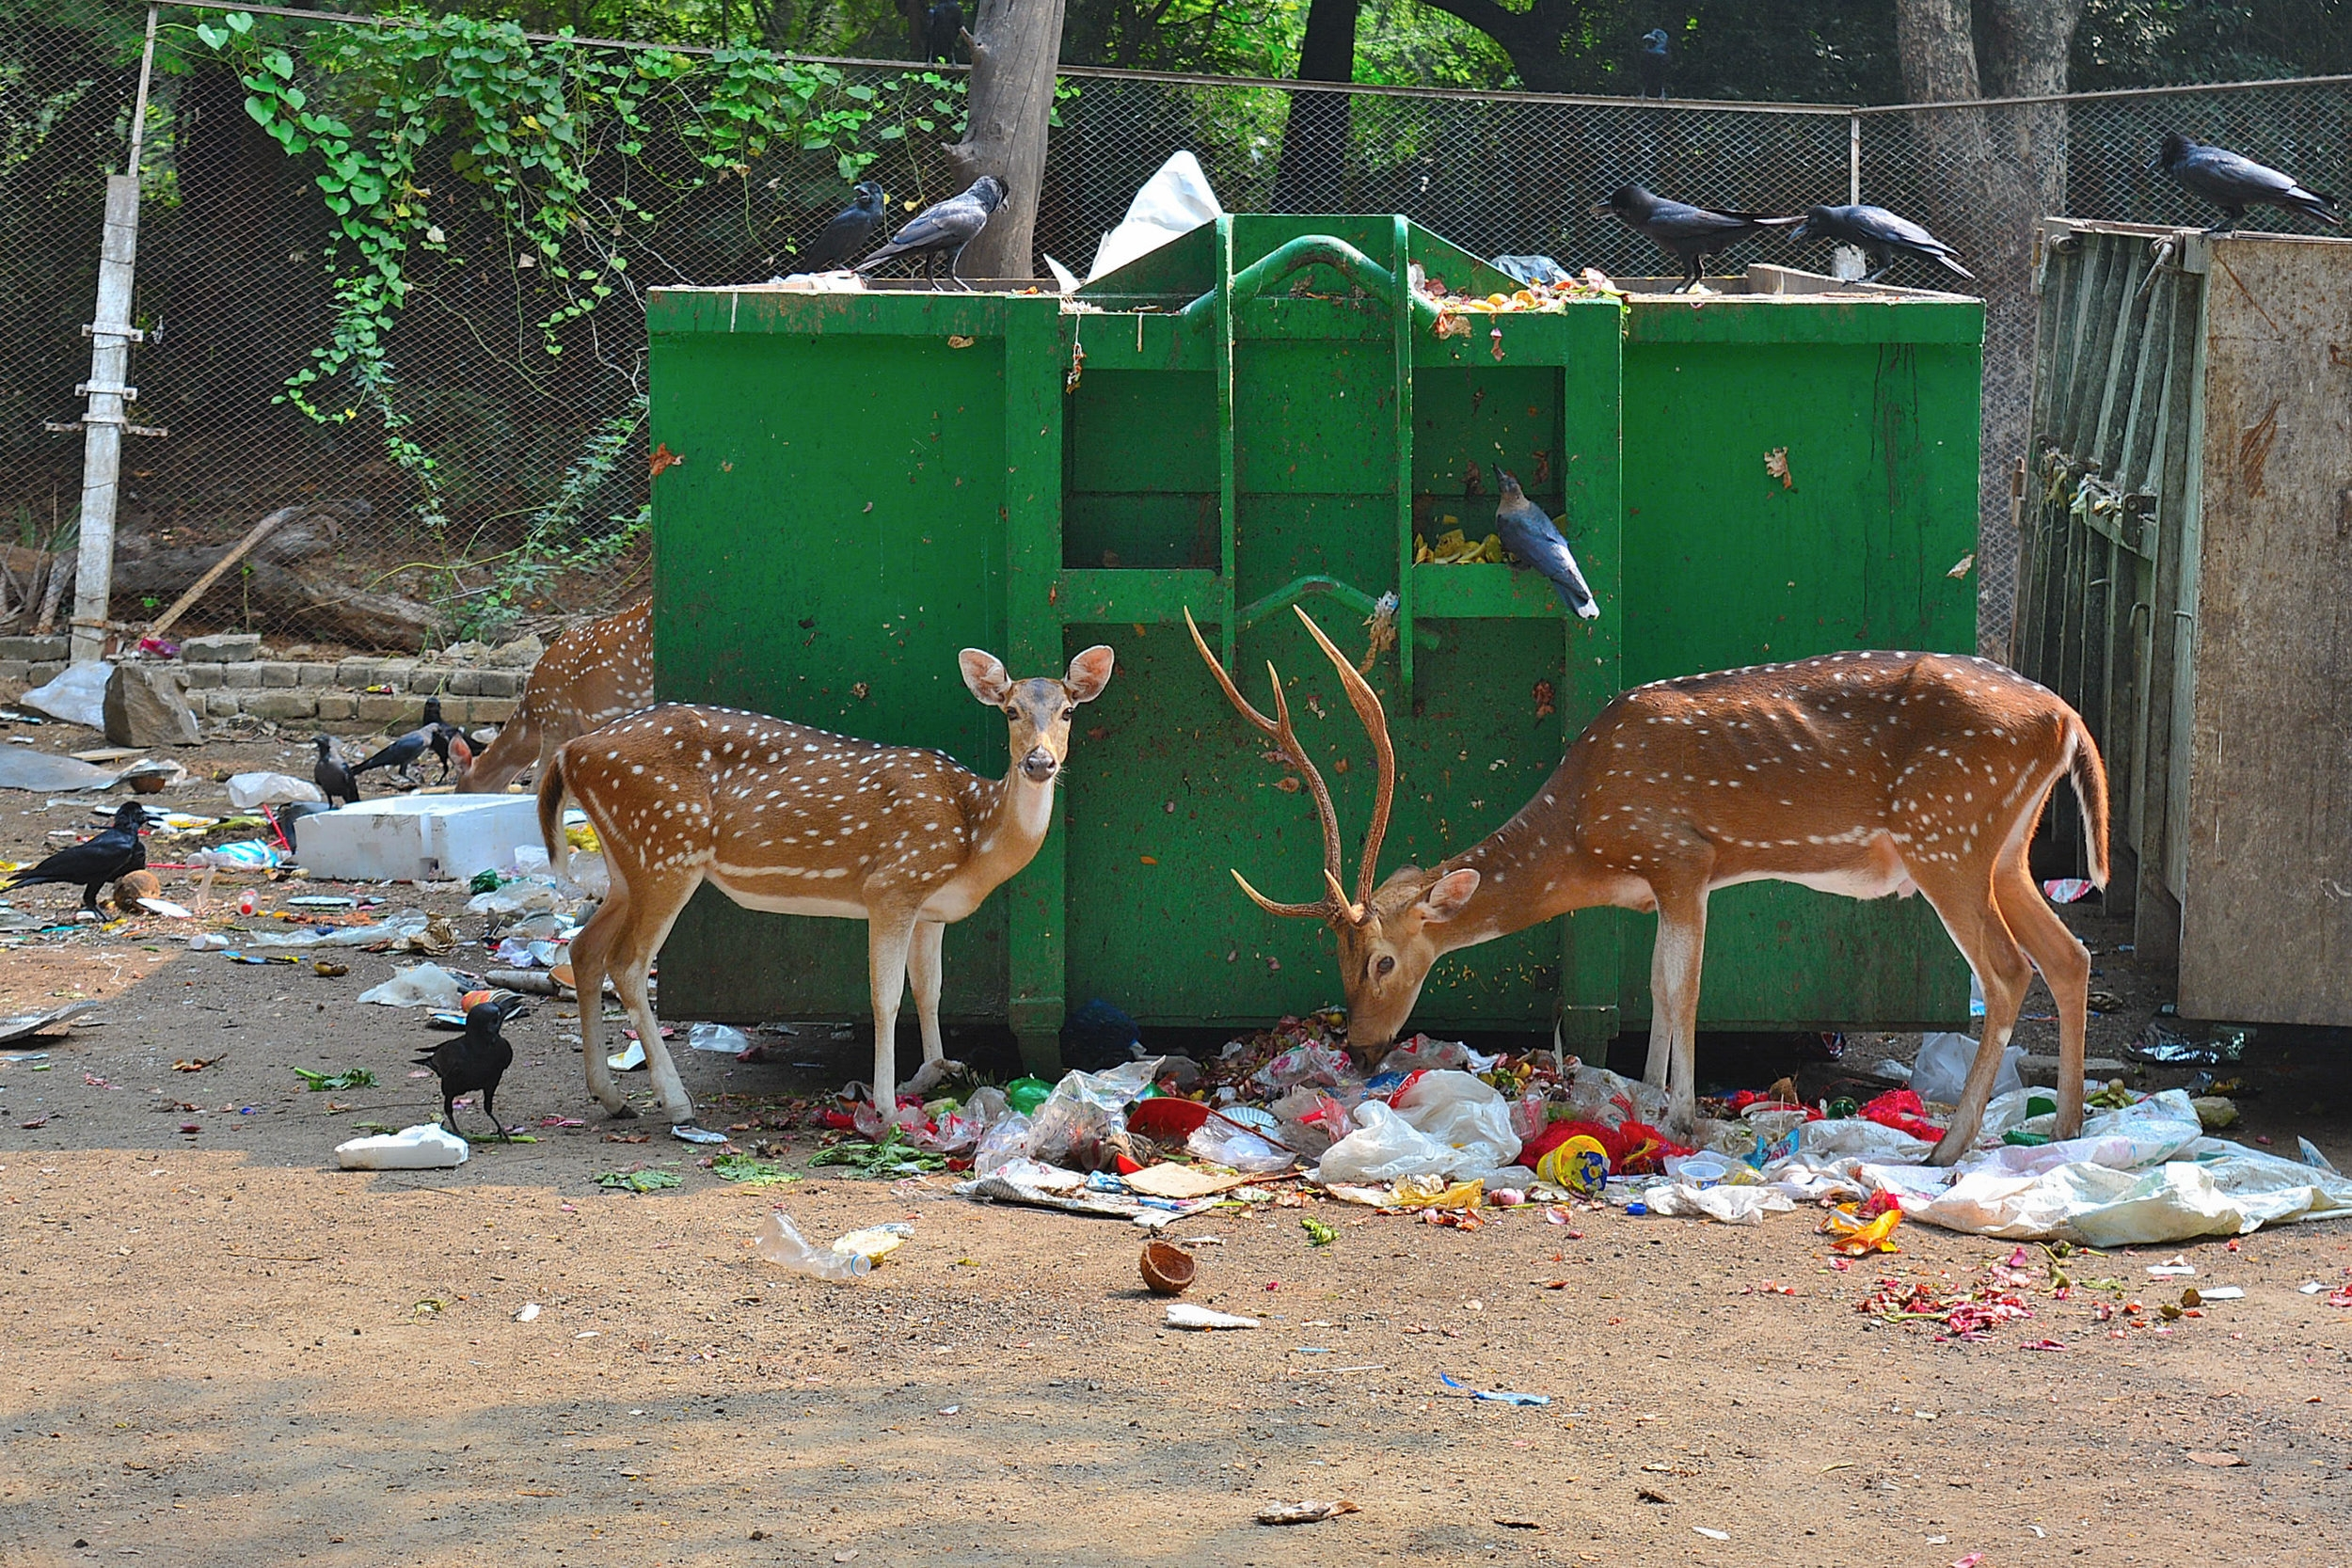 """Two deer look for food in piles of garbage on the campus of an educational institute in Chennai, India. Photo by                      Normal   0           false   false   false     EN-US   JA   X-NONE                                                                                                                                                                                                                                                                                                                                                                               /* Style Definitions */ table.MsoNormalTable {mso-style-name:""""Table Normal""""; mso-tstyle-rowband-size:0; mso-tstyle-colband-size:0; mso-style-noshow:yes; mso-style-priority:99; mso-style-parent:""""""""; mso-padding-alt:0in 5.4pt 0in 5.4pt; mso-para-margin:0in; mso-para-margin-bottom:.0001pt; mso-pagination:widow-orphan; font-size:12.0pt; font-family:Cambria; mso-ascii-font-family:Cambria; mso-ascii-theme-font:minor-latin; mso-hansi-font-family:Cambria; mso-hansi-theme-font:minor-latin;}      Sachchidanand Swami."""